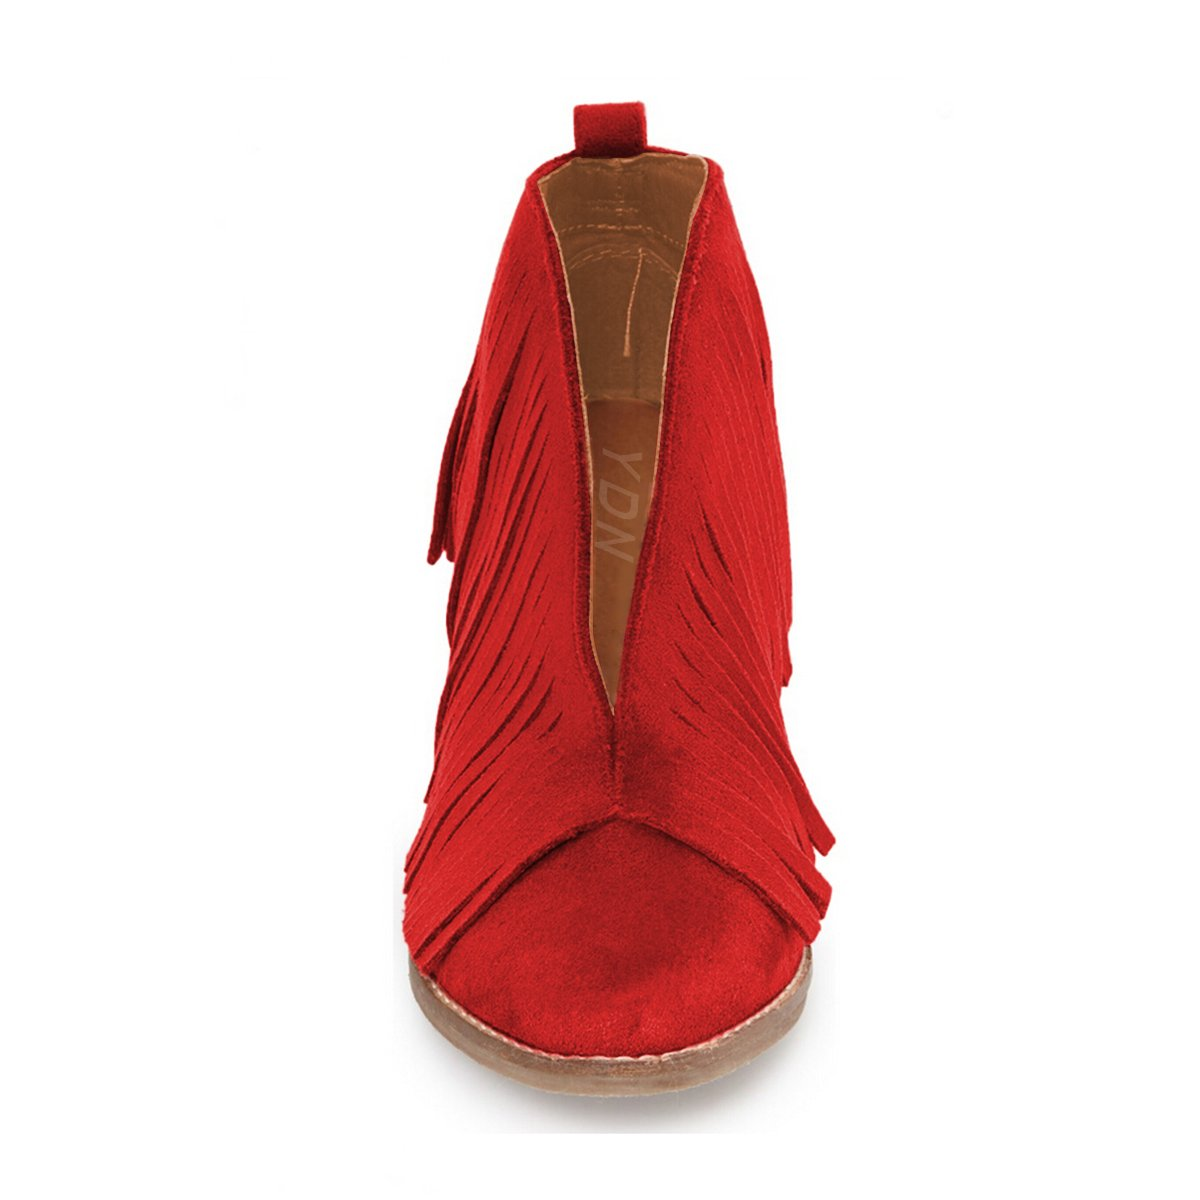 YDN Western Ankle High Boots with Tassels Round Toe Block Heel Suede Retro Booties B01KC2986C 6 B(M) US Red